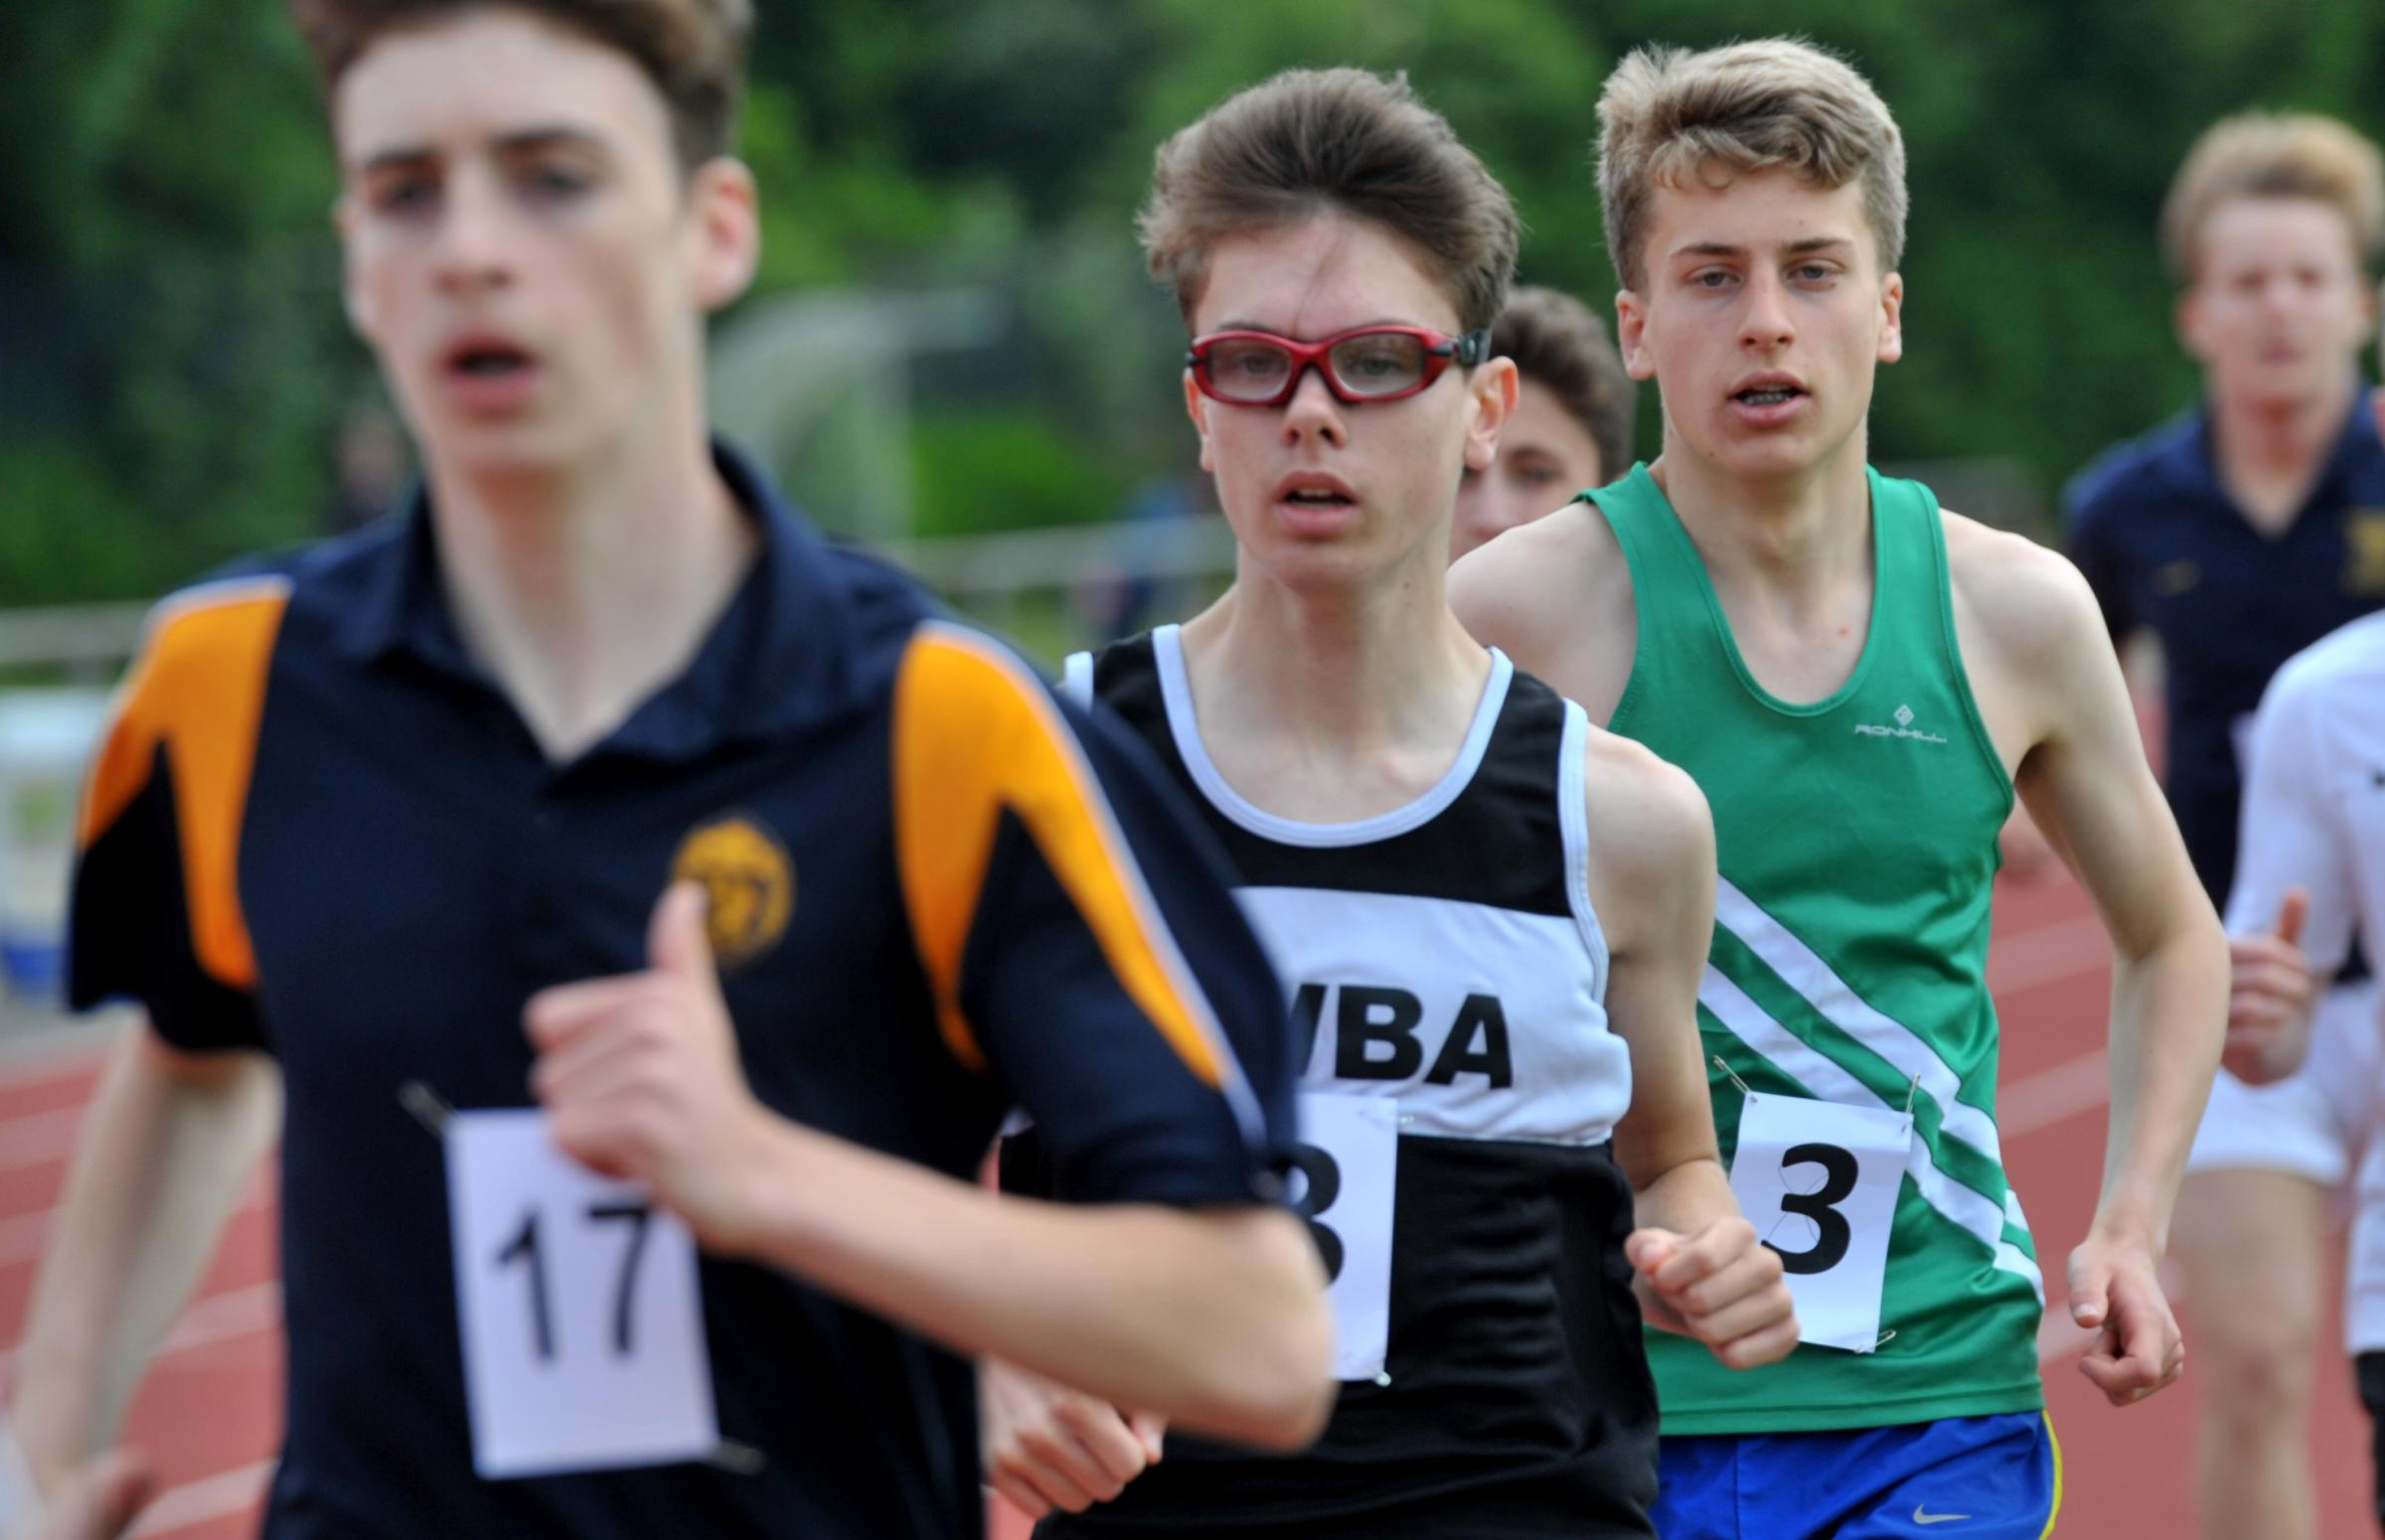 Action from the senior boys' 1500m at the Wiltshire Schools Athletics Championships at Swindon's County Ground. Picture: DAVE COX